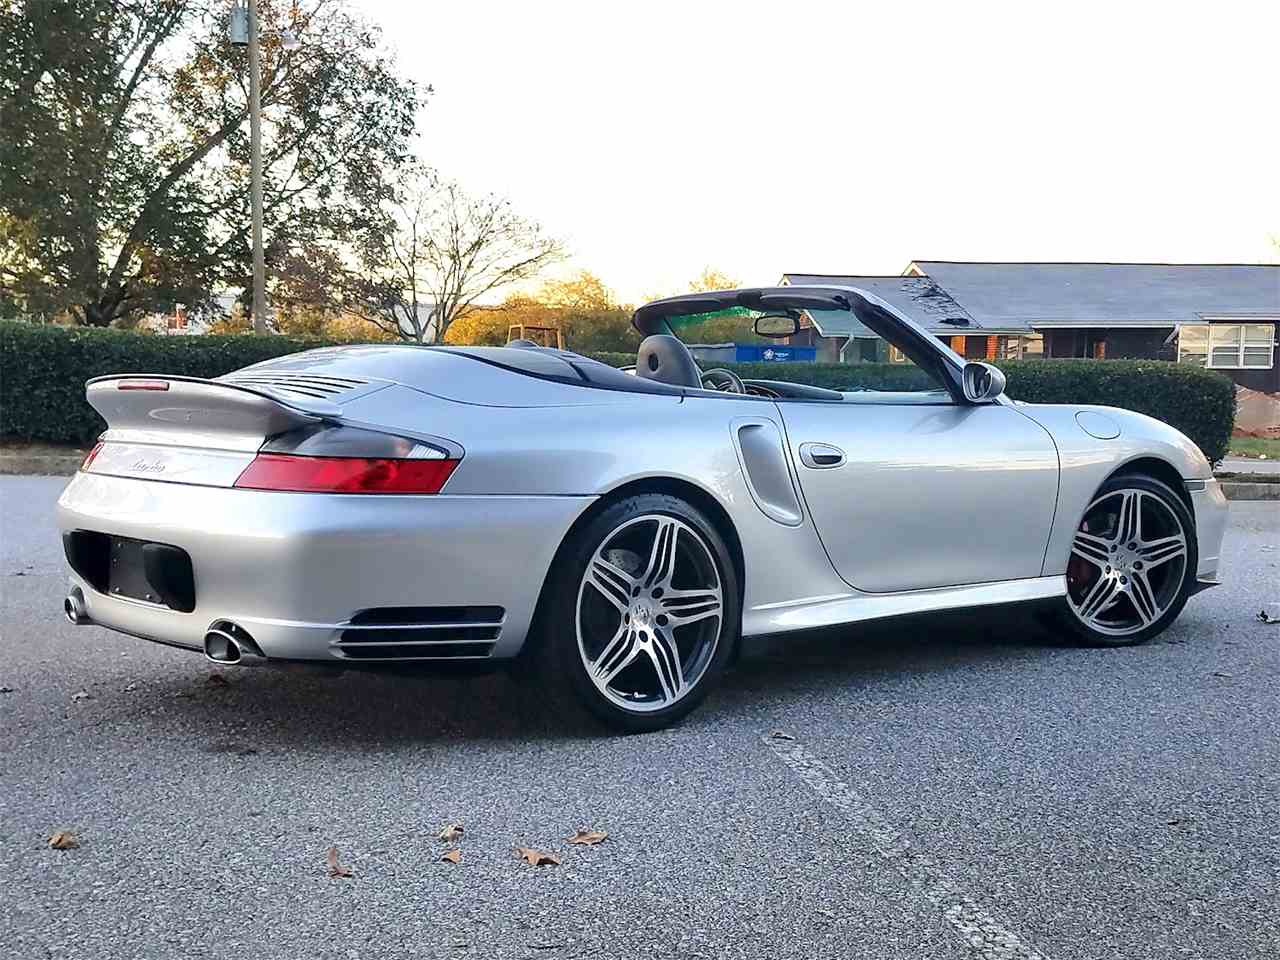 Large Picture of 2004 911 Carrera Turbo - $55,000.00 - MCDK